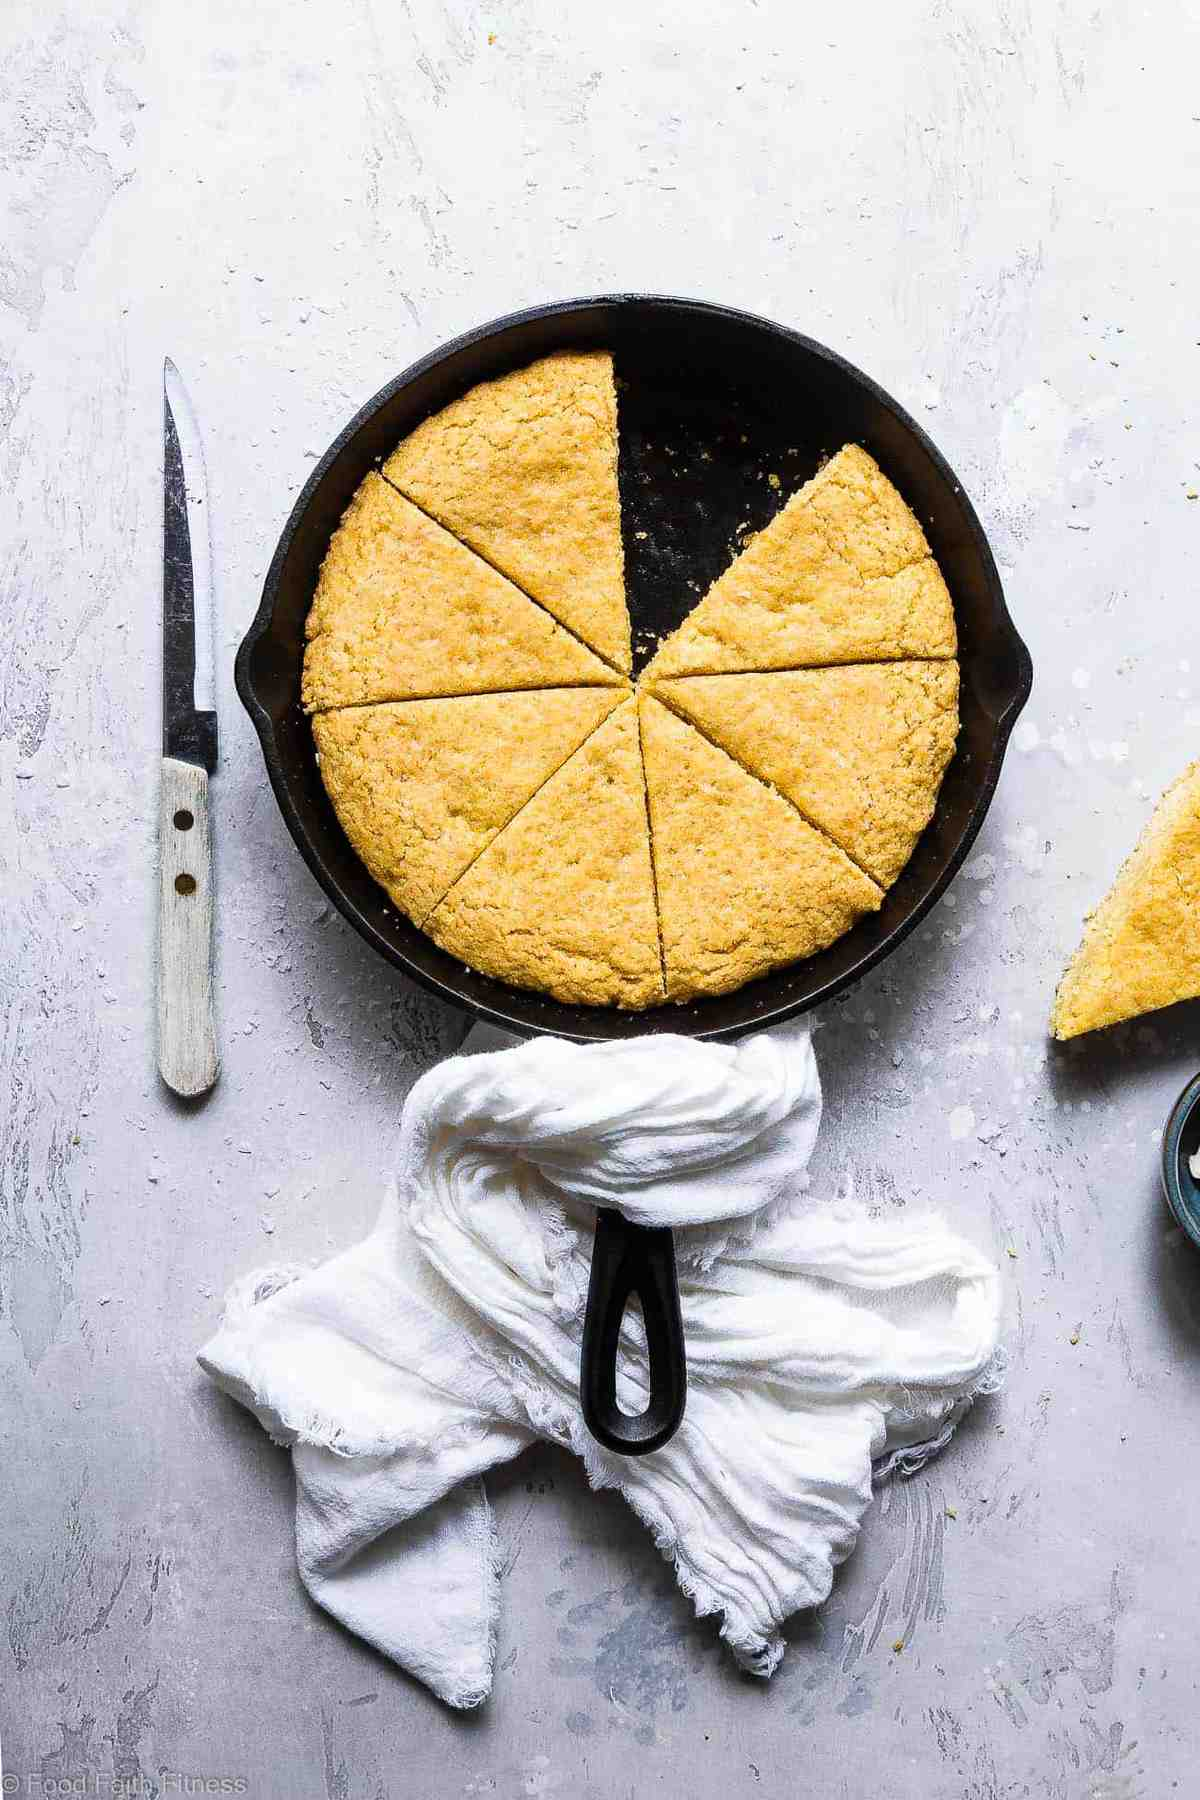 The Best Vegan Cornbread Recipe - This is theBEST gluten free, dairy free, egg free and vegancornbread recipe! It's perfectly sweet, dense and SO chewy, you will never believe it's healthy and SO easy to make! | #Foodfaithfitness | #Glutenfree #Vegan #Dairyfree #Eggfree #Cornbread